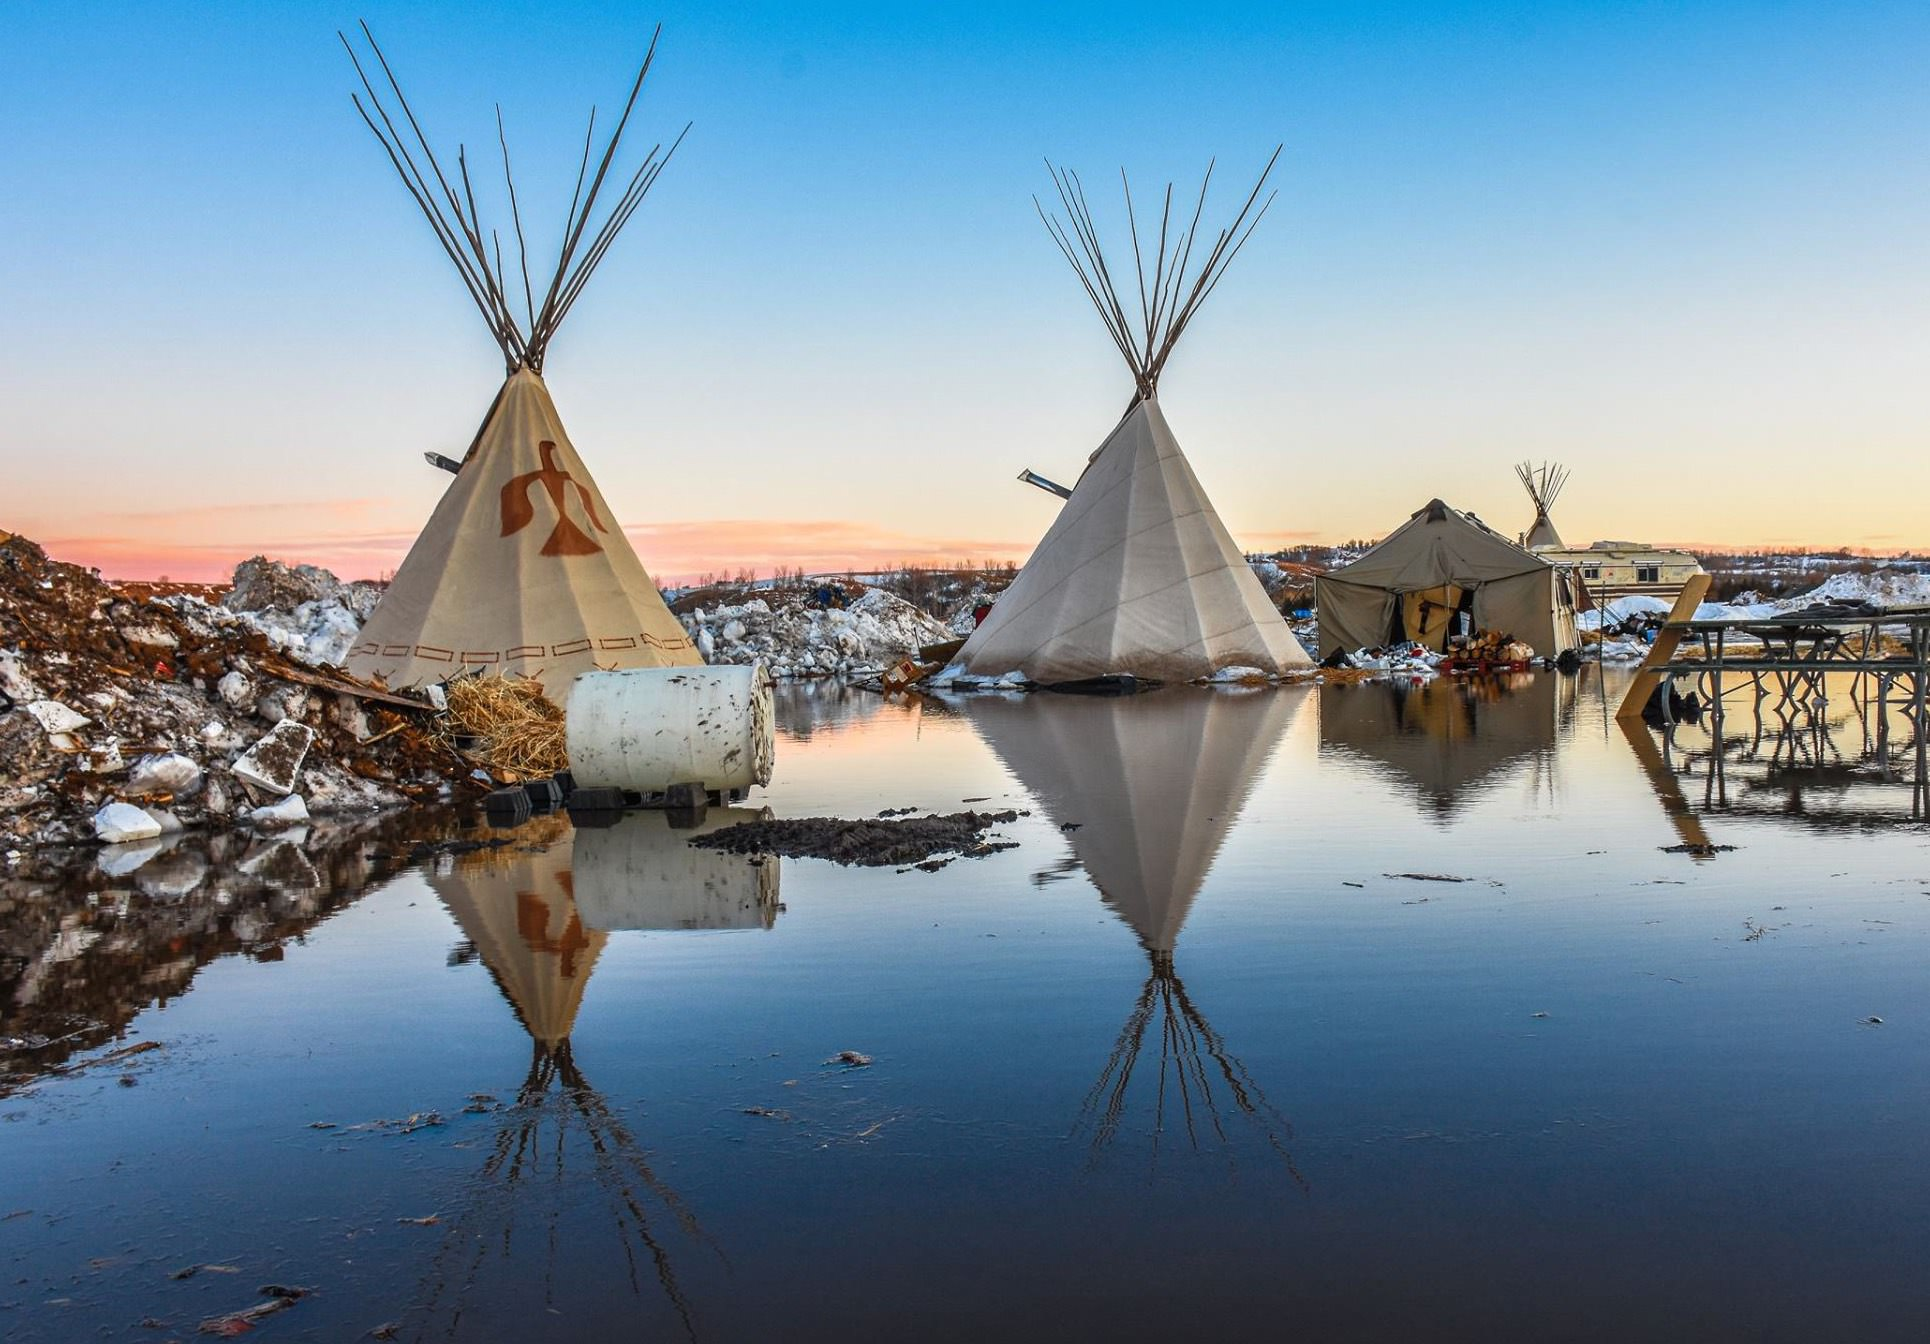 The eviction of the Standing Rock camps